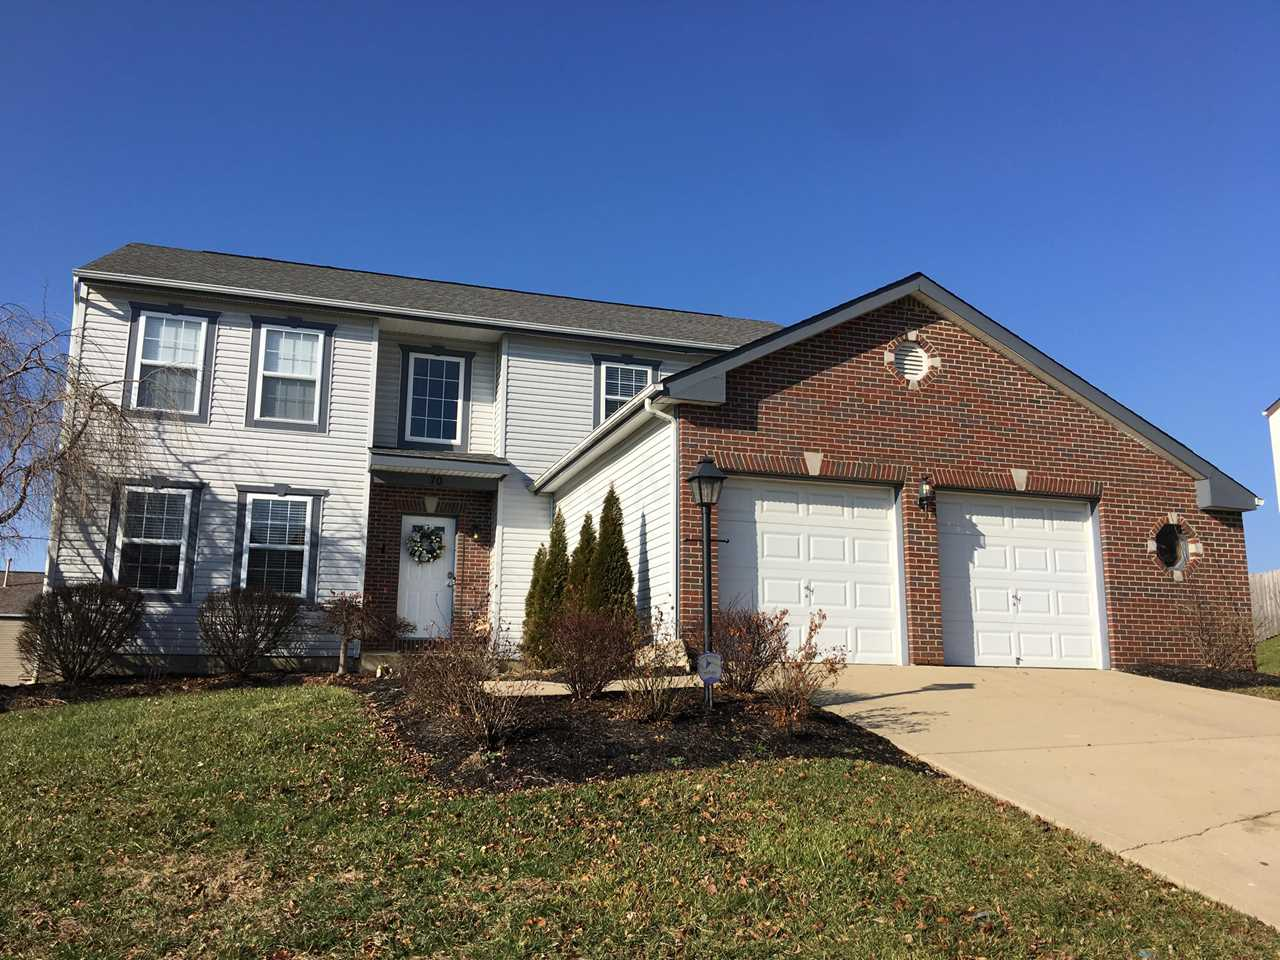 70 Glengary Court Pickerington, OH 43147 | MLS 219000475 Photo 1